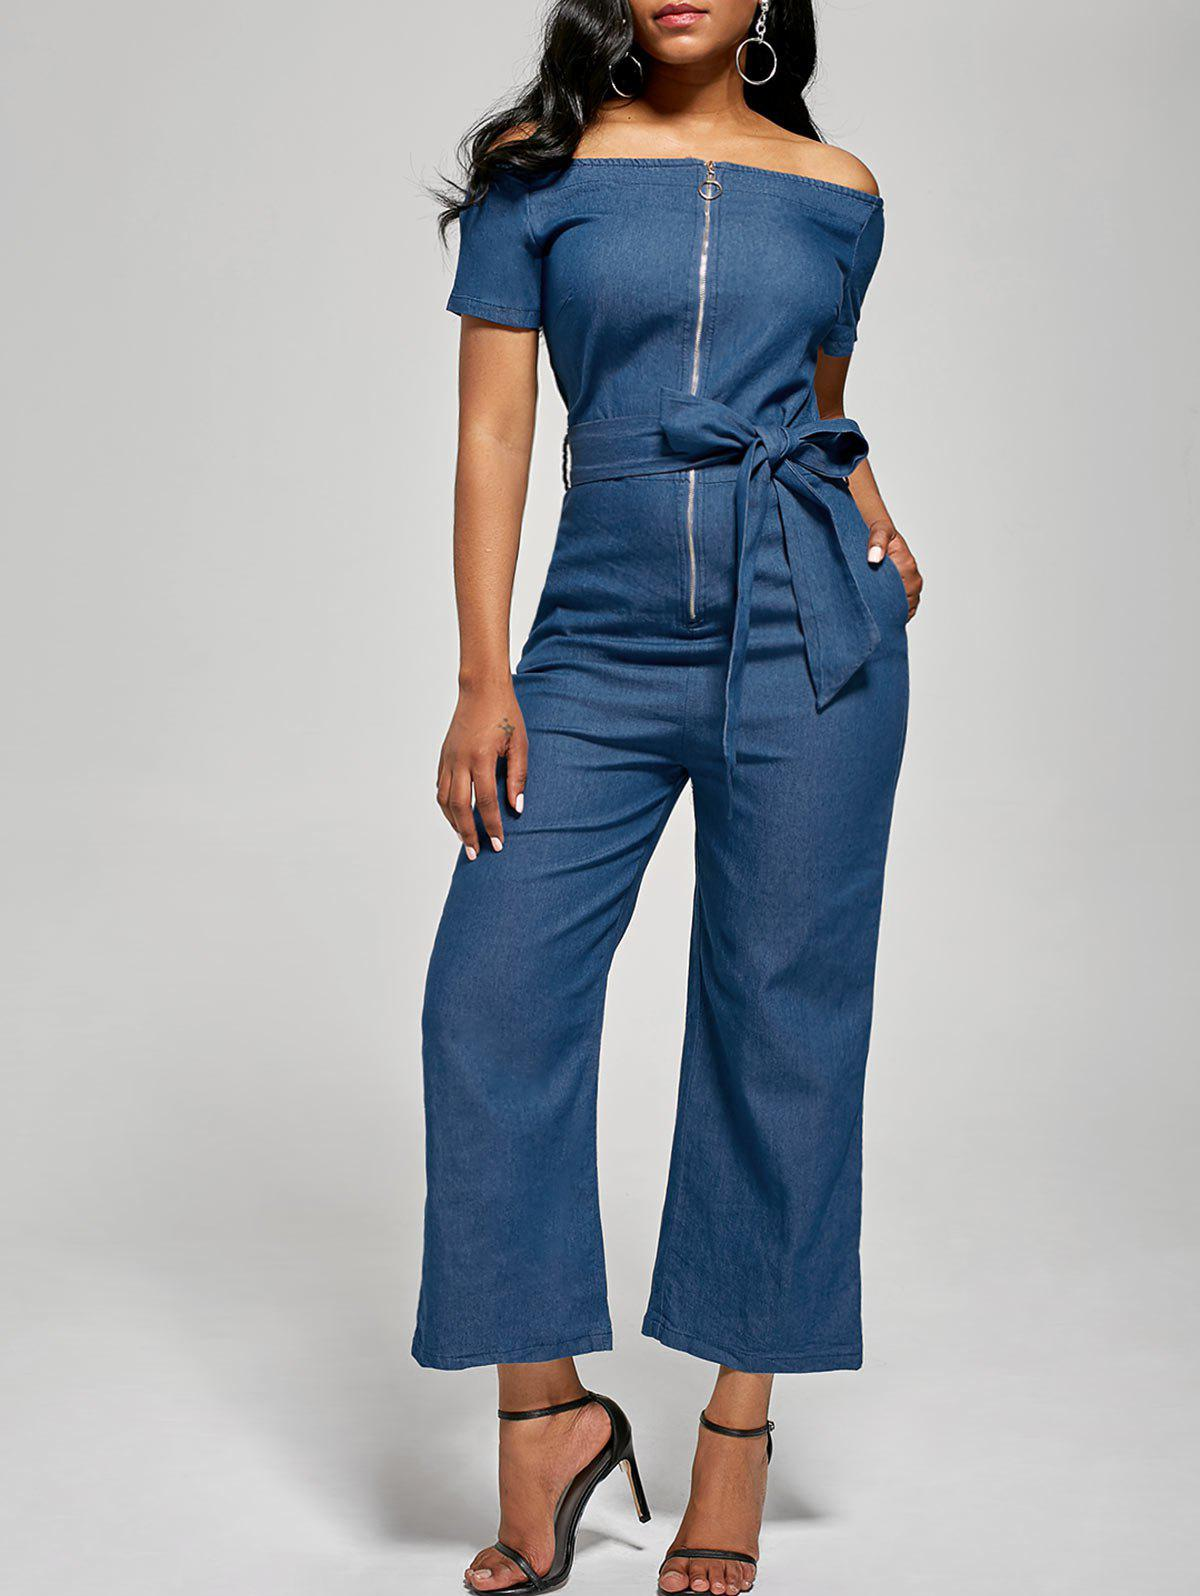 Off The Shoulder Denim Zippered Jumpsuit - DENIM BLUE L